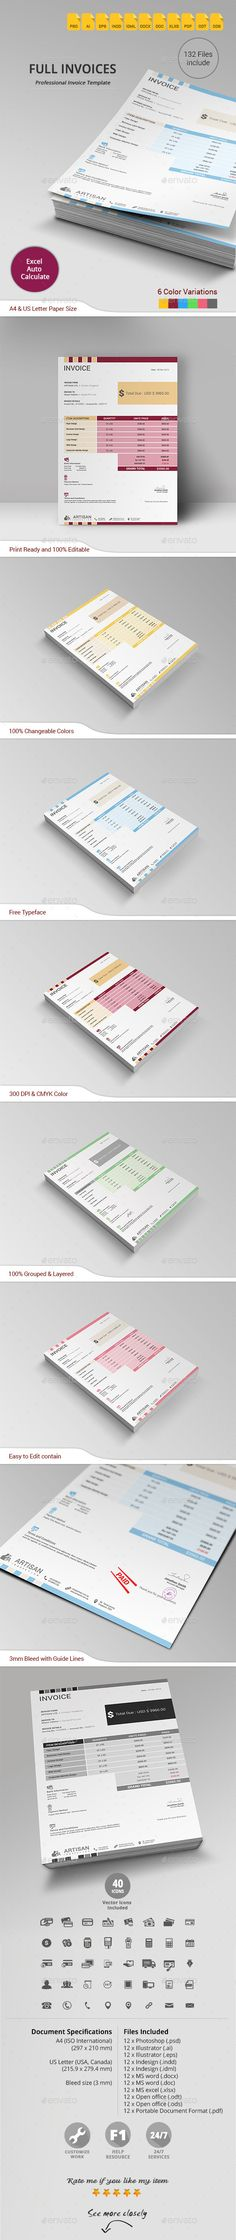 Stationary  Invoice Design Template v5 Stationary, Template and